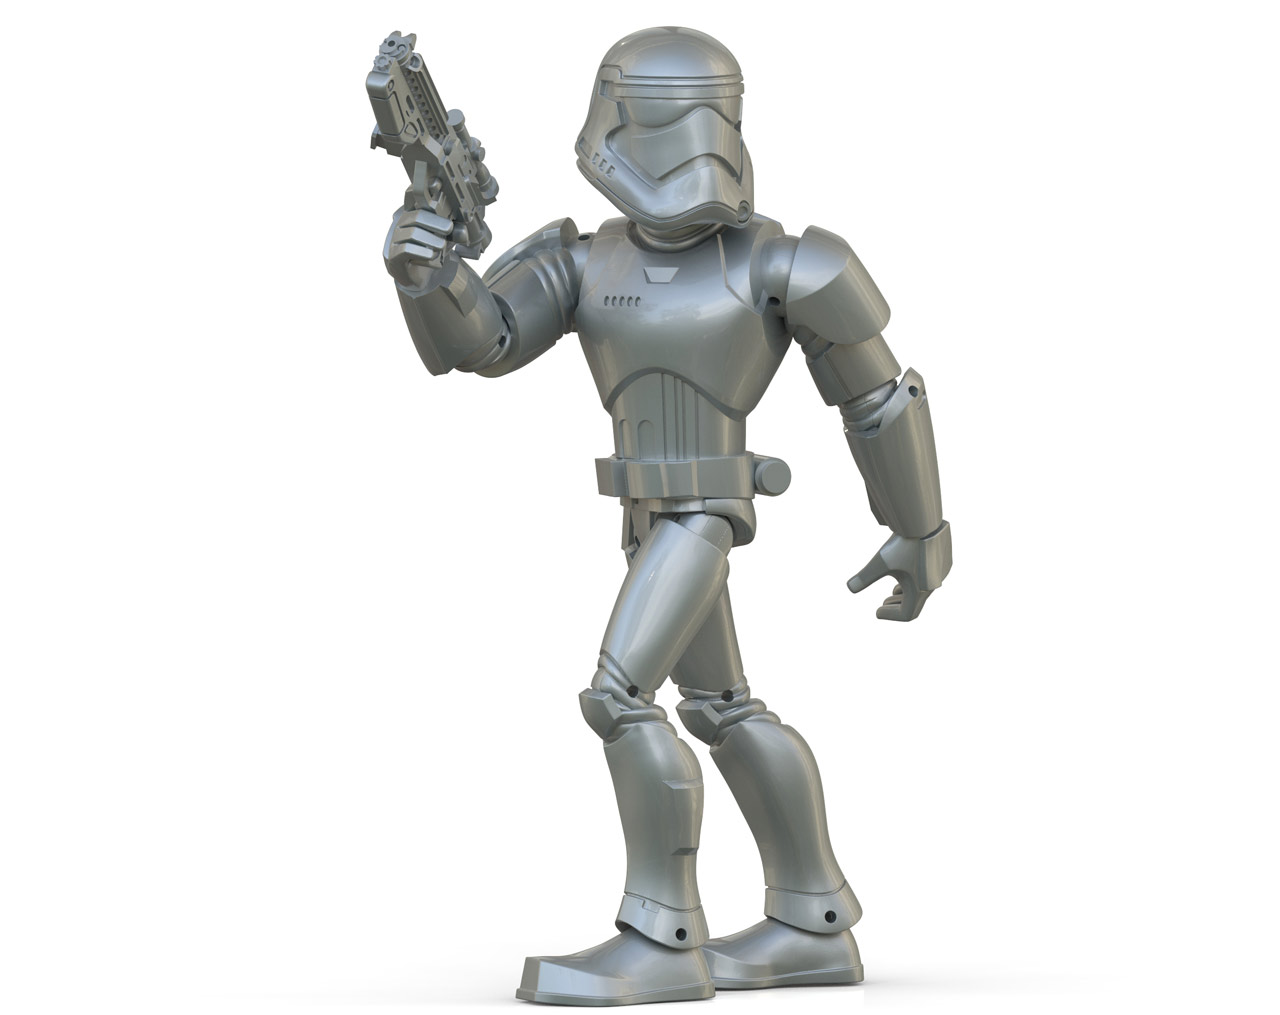 Kids Toys Action Figure: Inside The New Disney Infinity-Inspired Star Wars Toybox